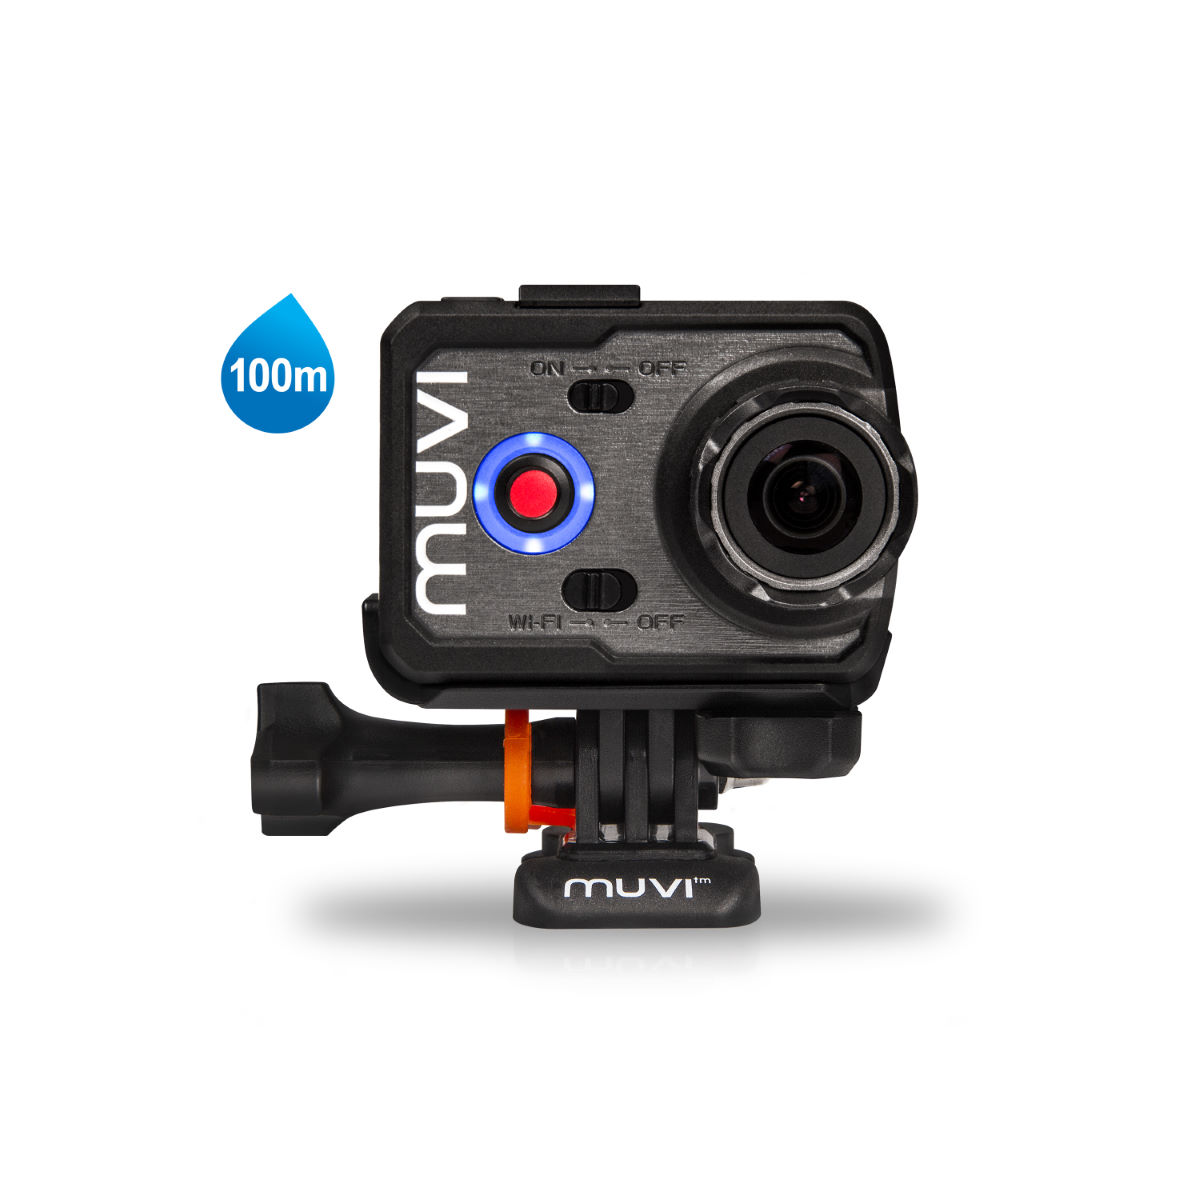 Veho Muvi K-Series Action Camera / Camcorder - Cámaras digitales para cascos